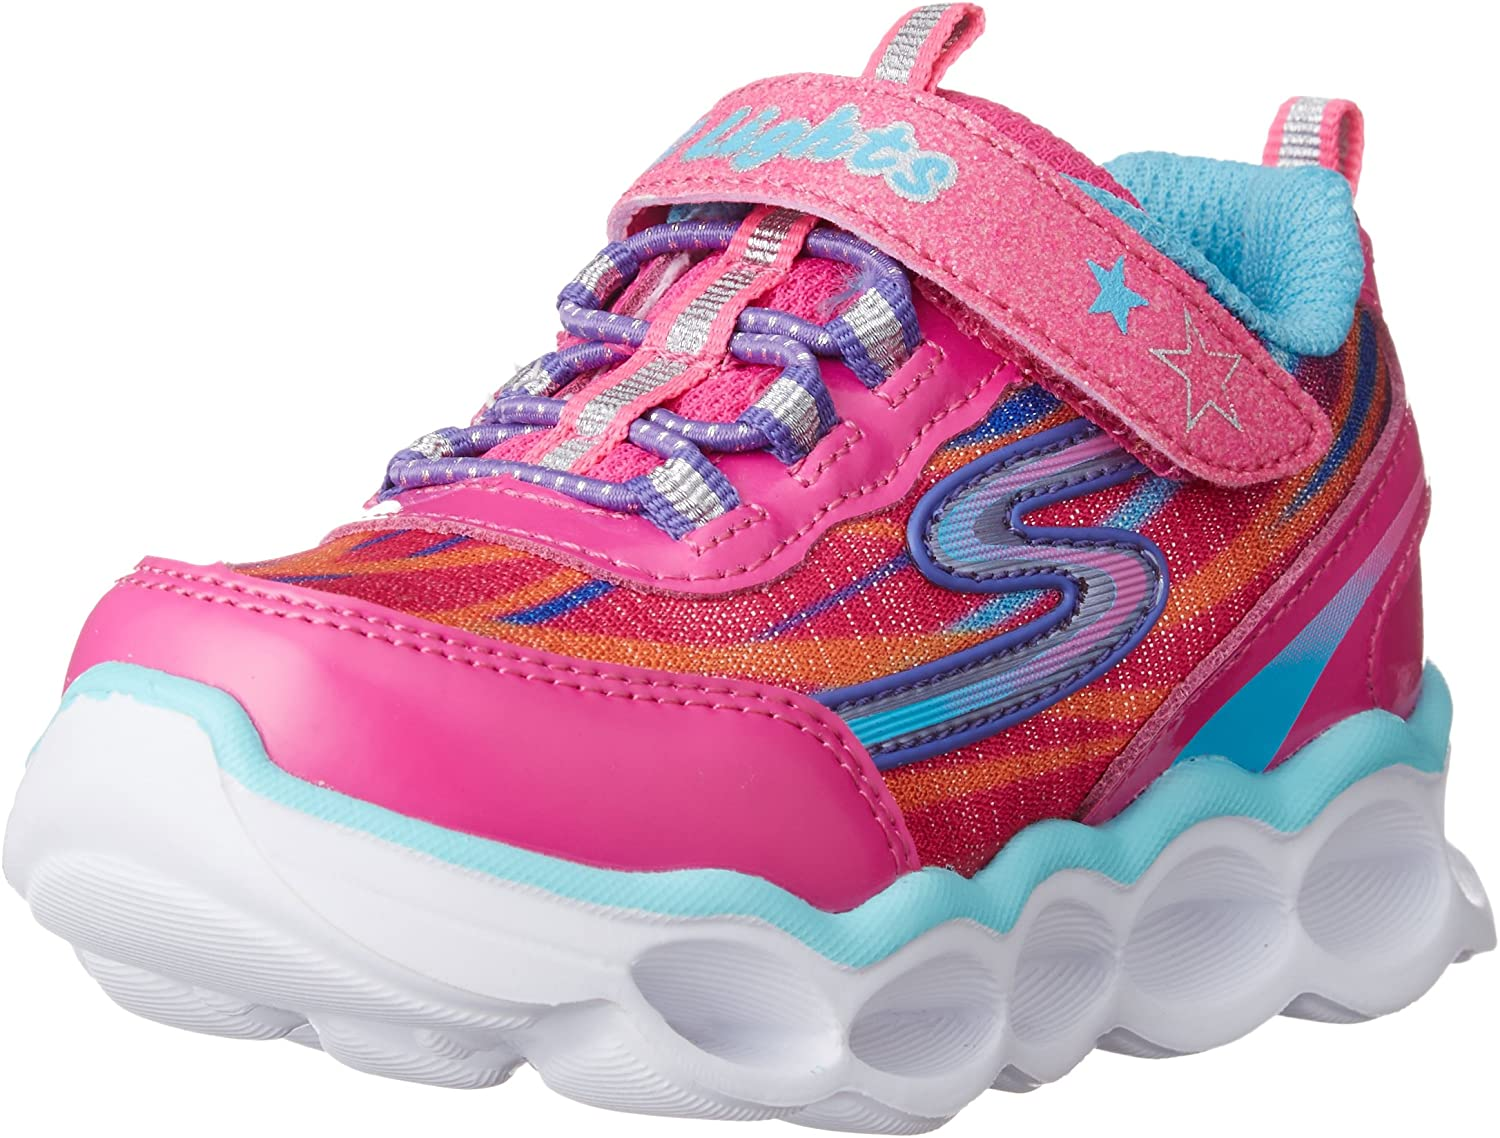 skechers light up shoes not working